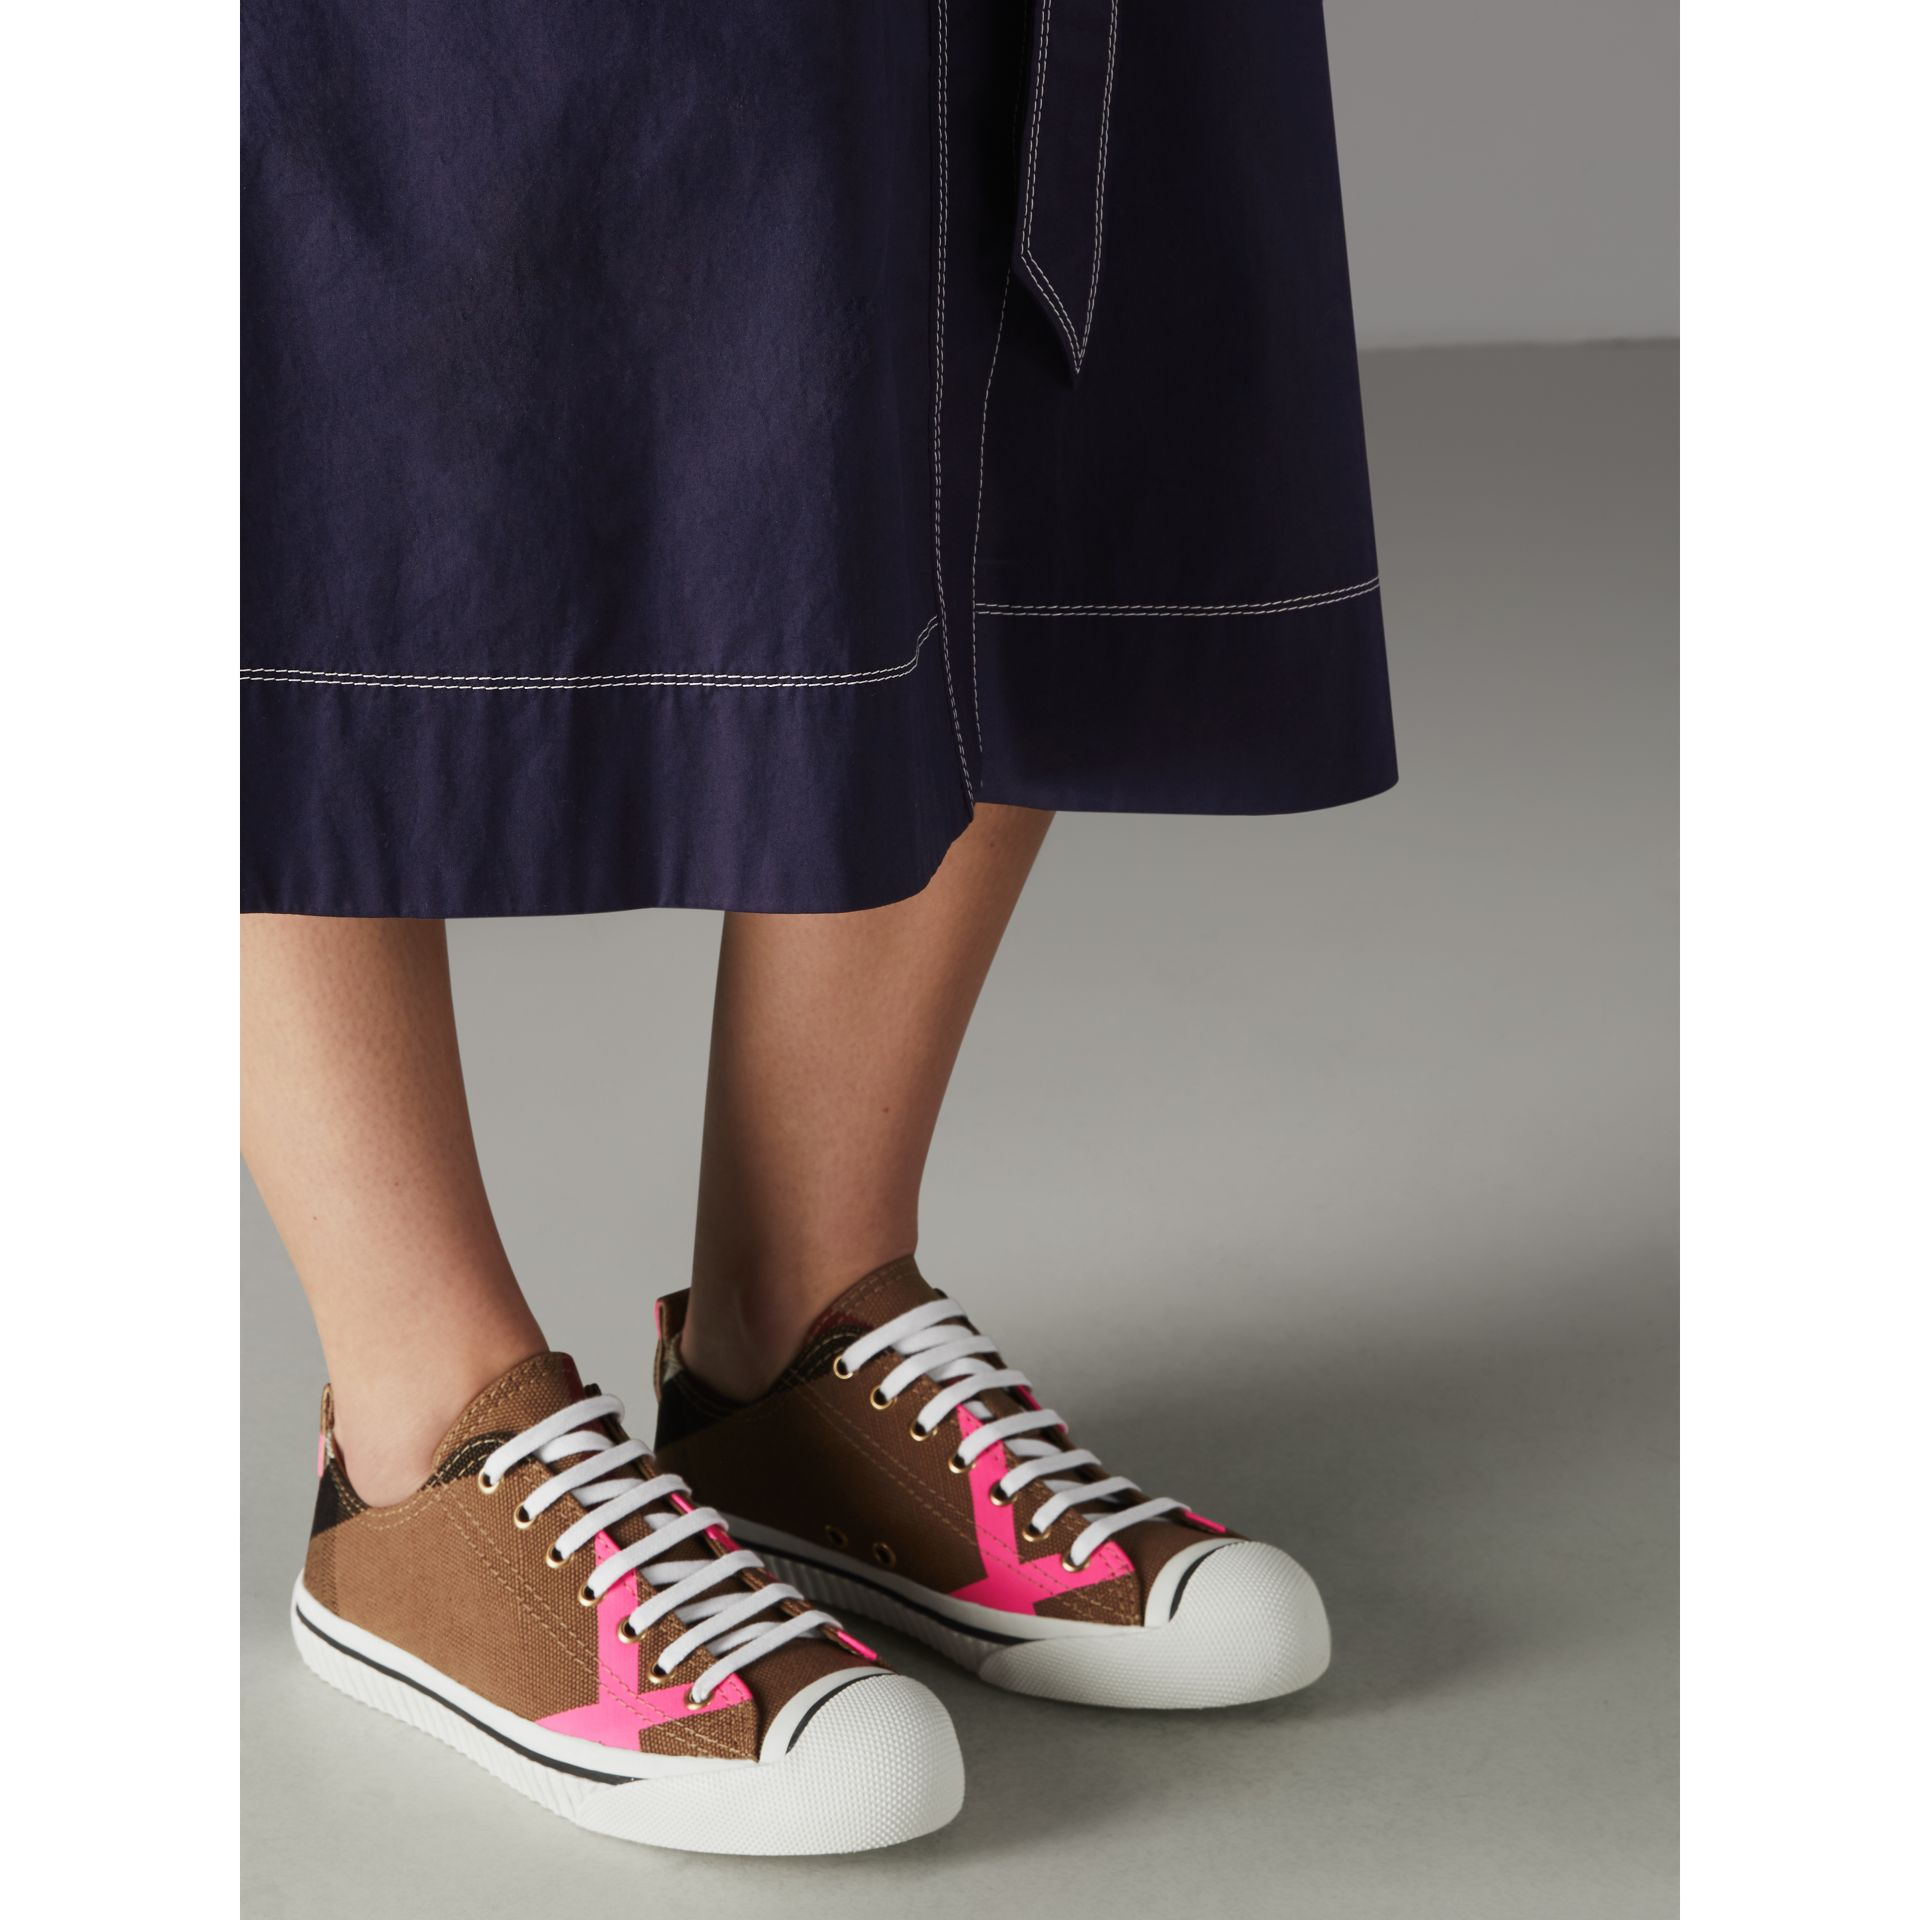 Canvas Check and Leather Sneakers in Classic/neon Pink - Women | Burberry United Kingdom - gallery image 2